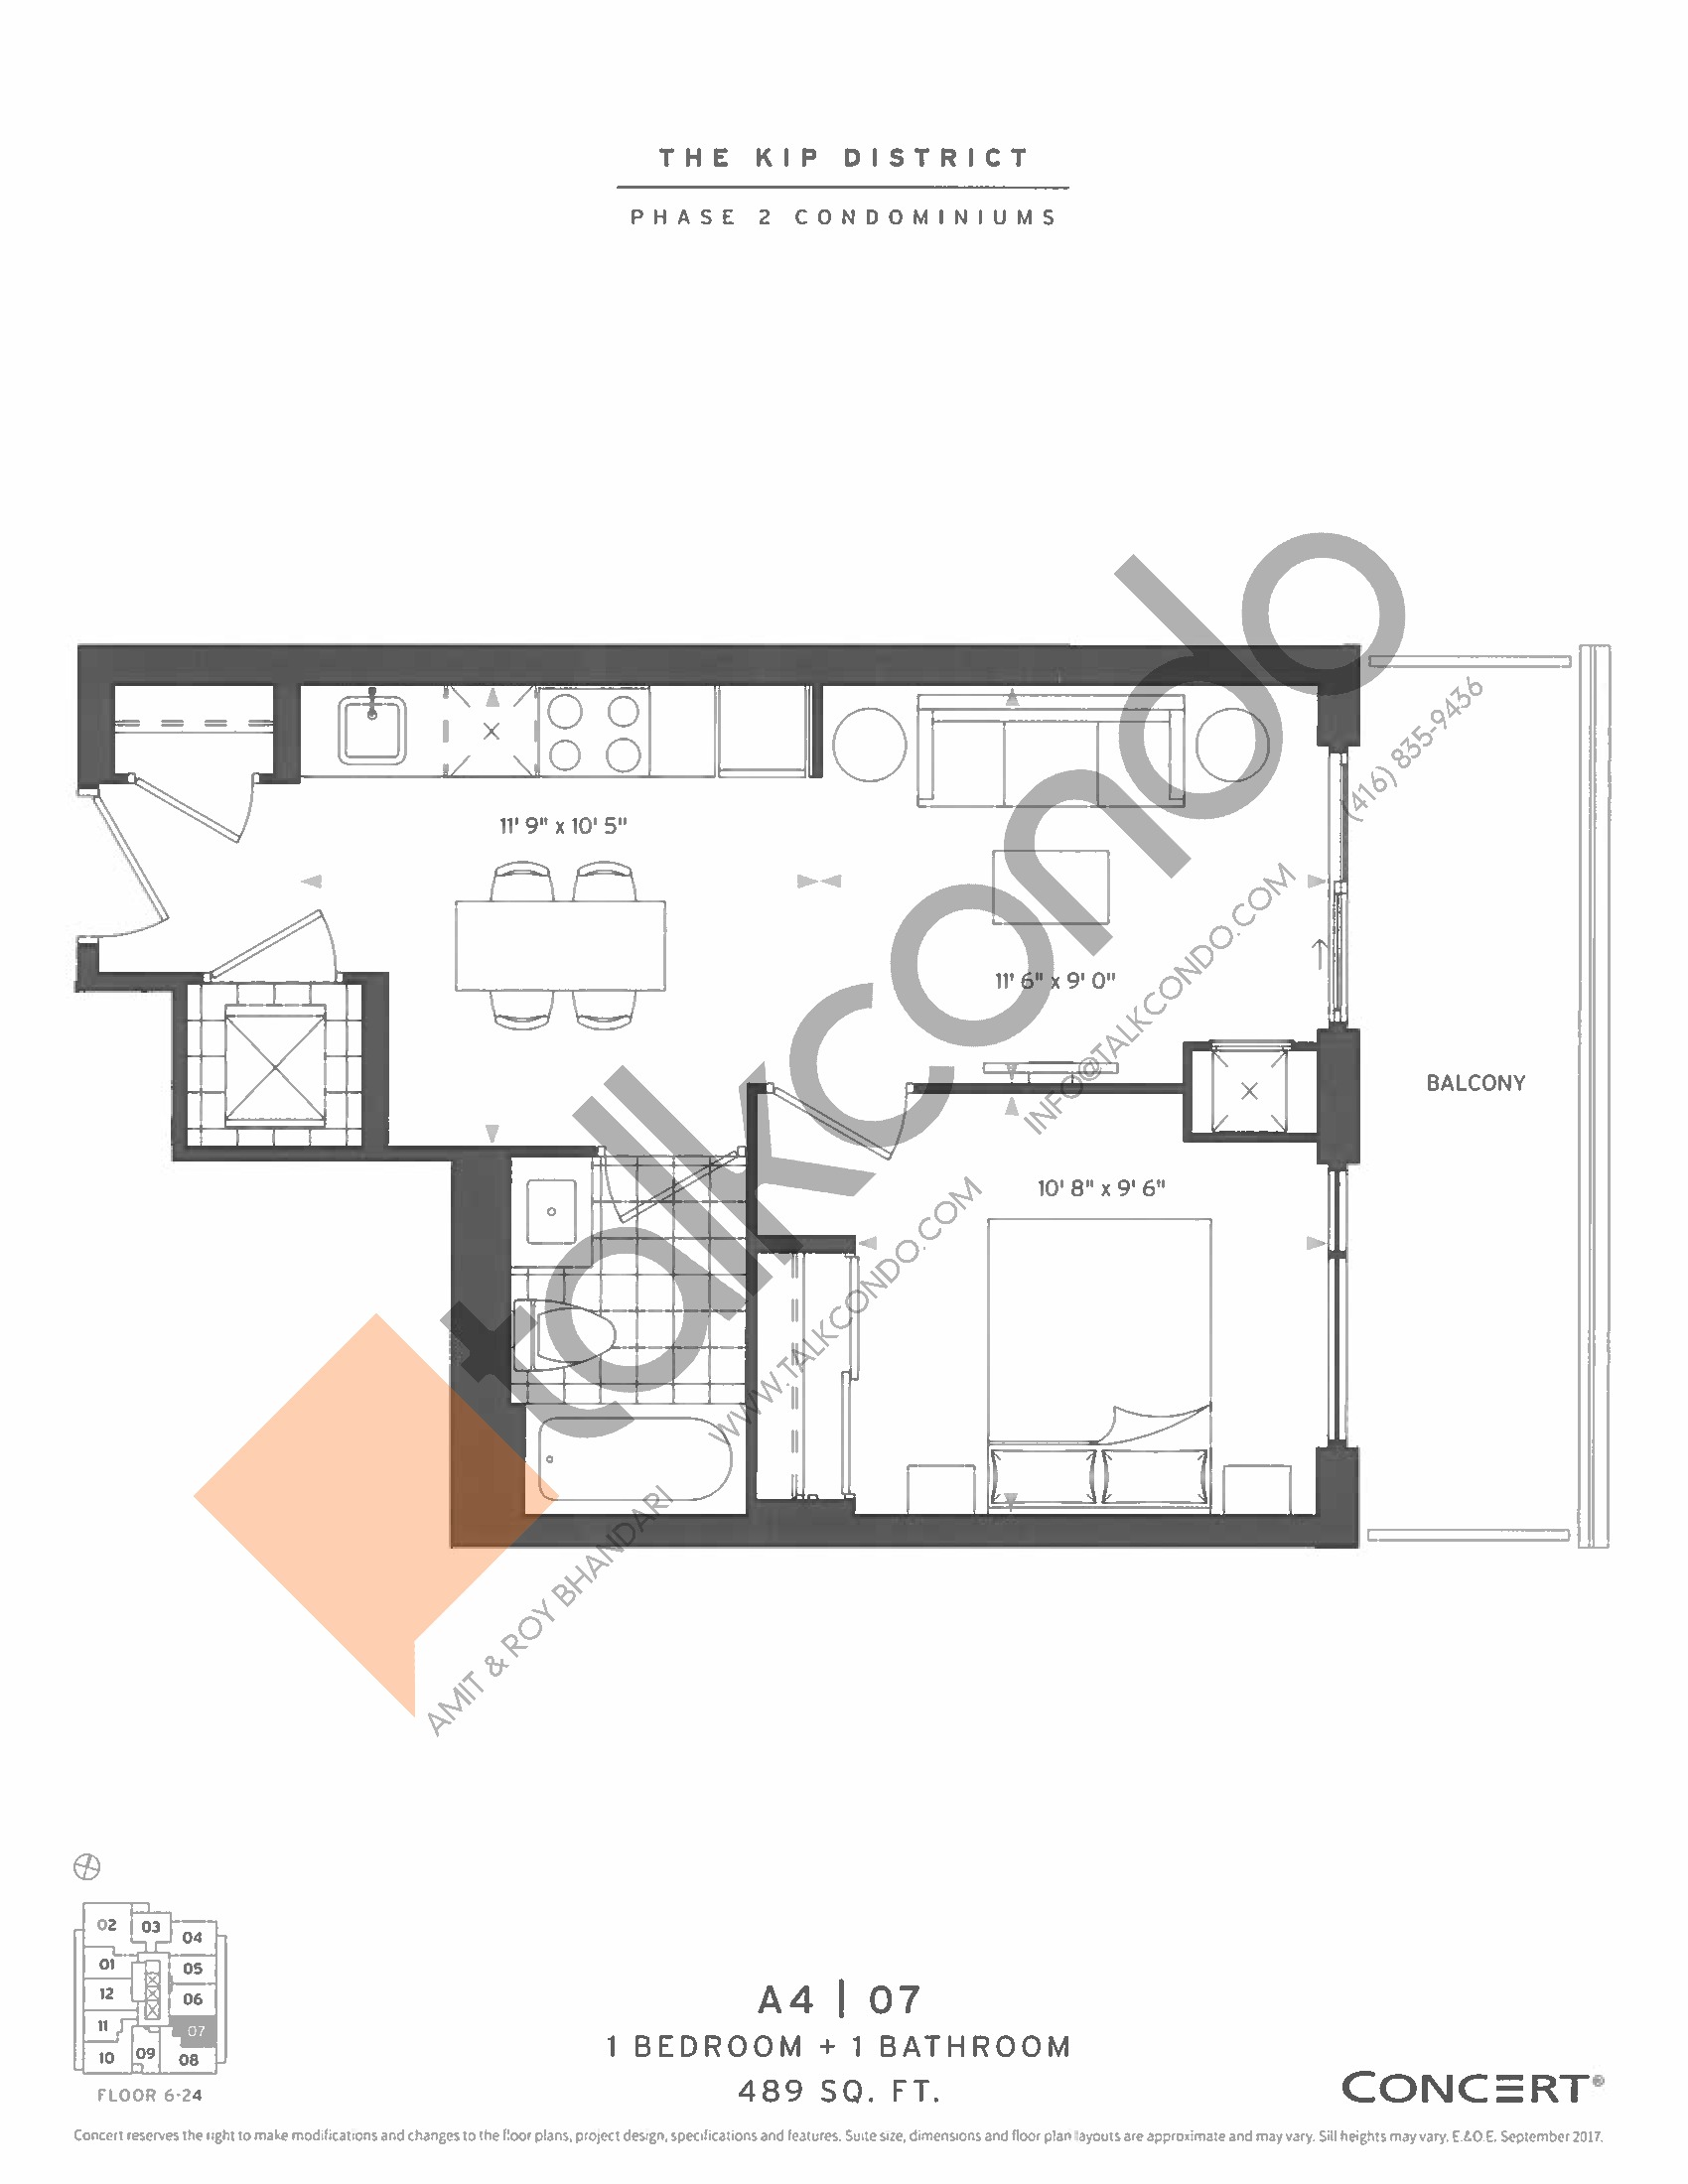 A4 | 07 Floor Plan at The Kip District Phase 2 Condos - 489 sq.ft